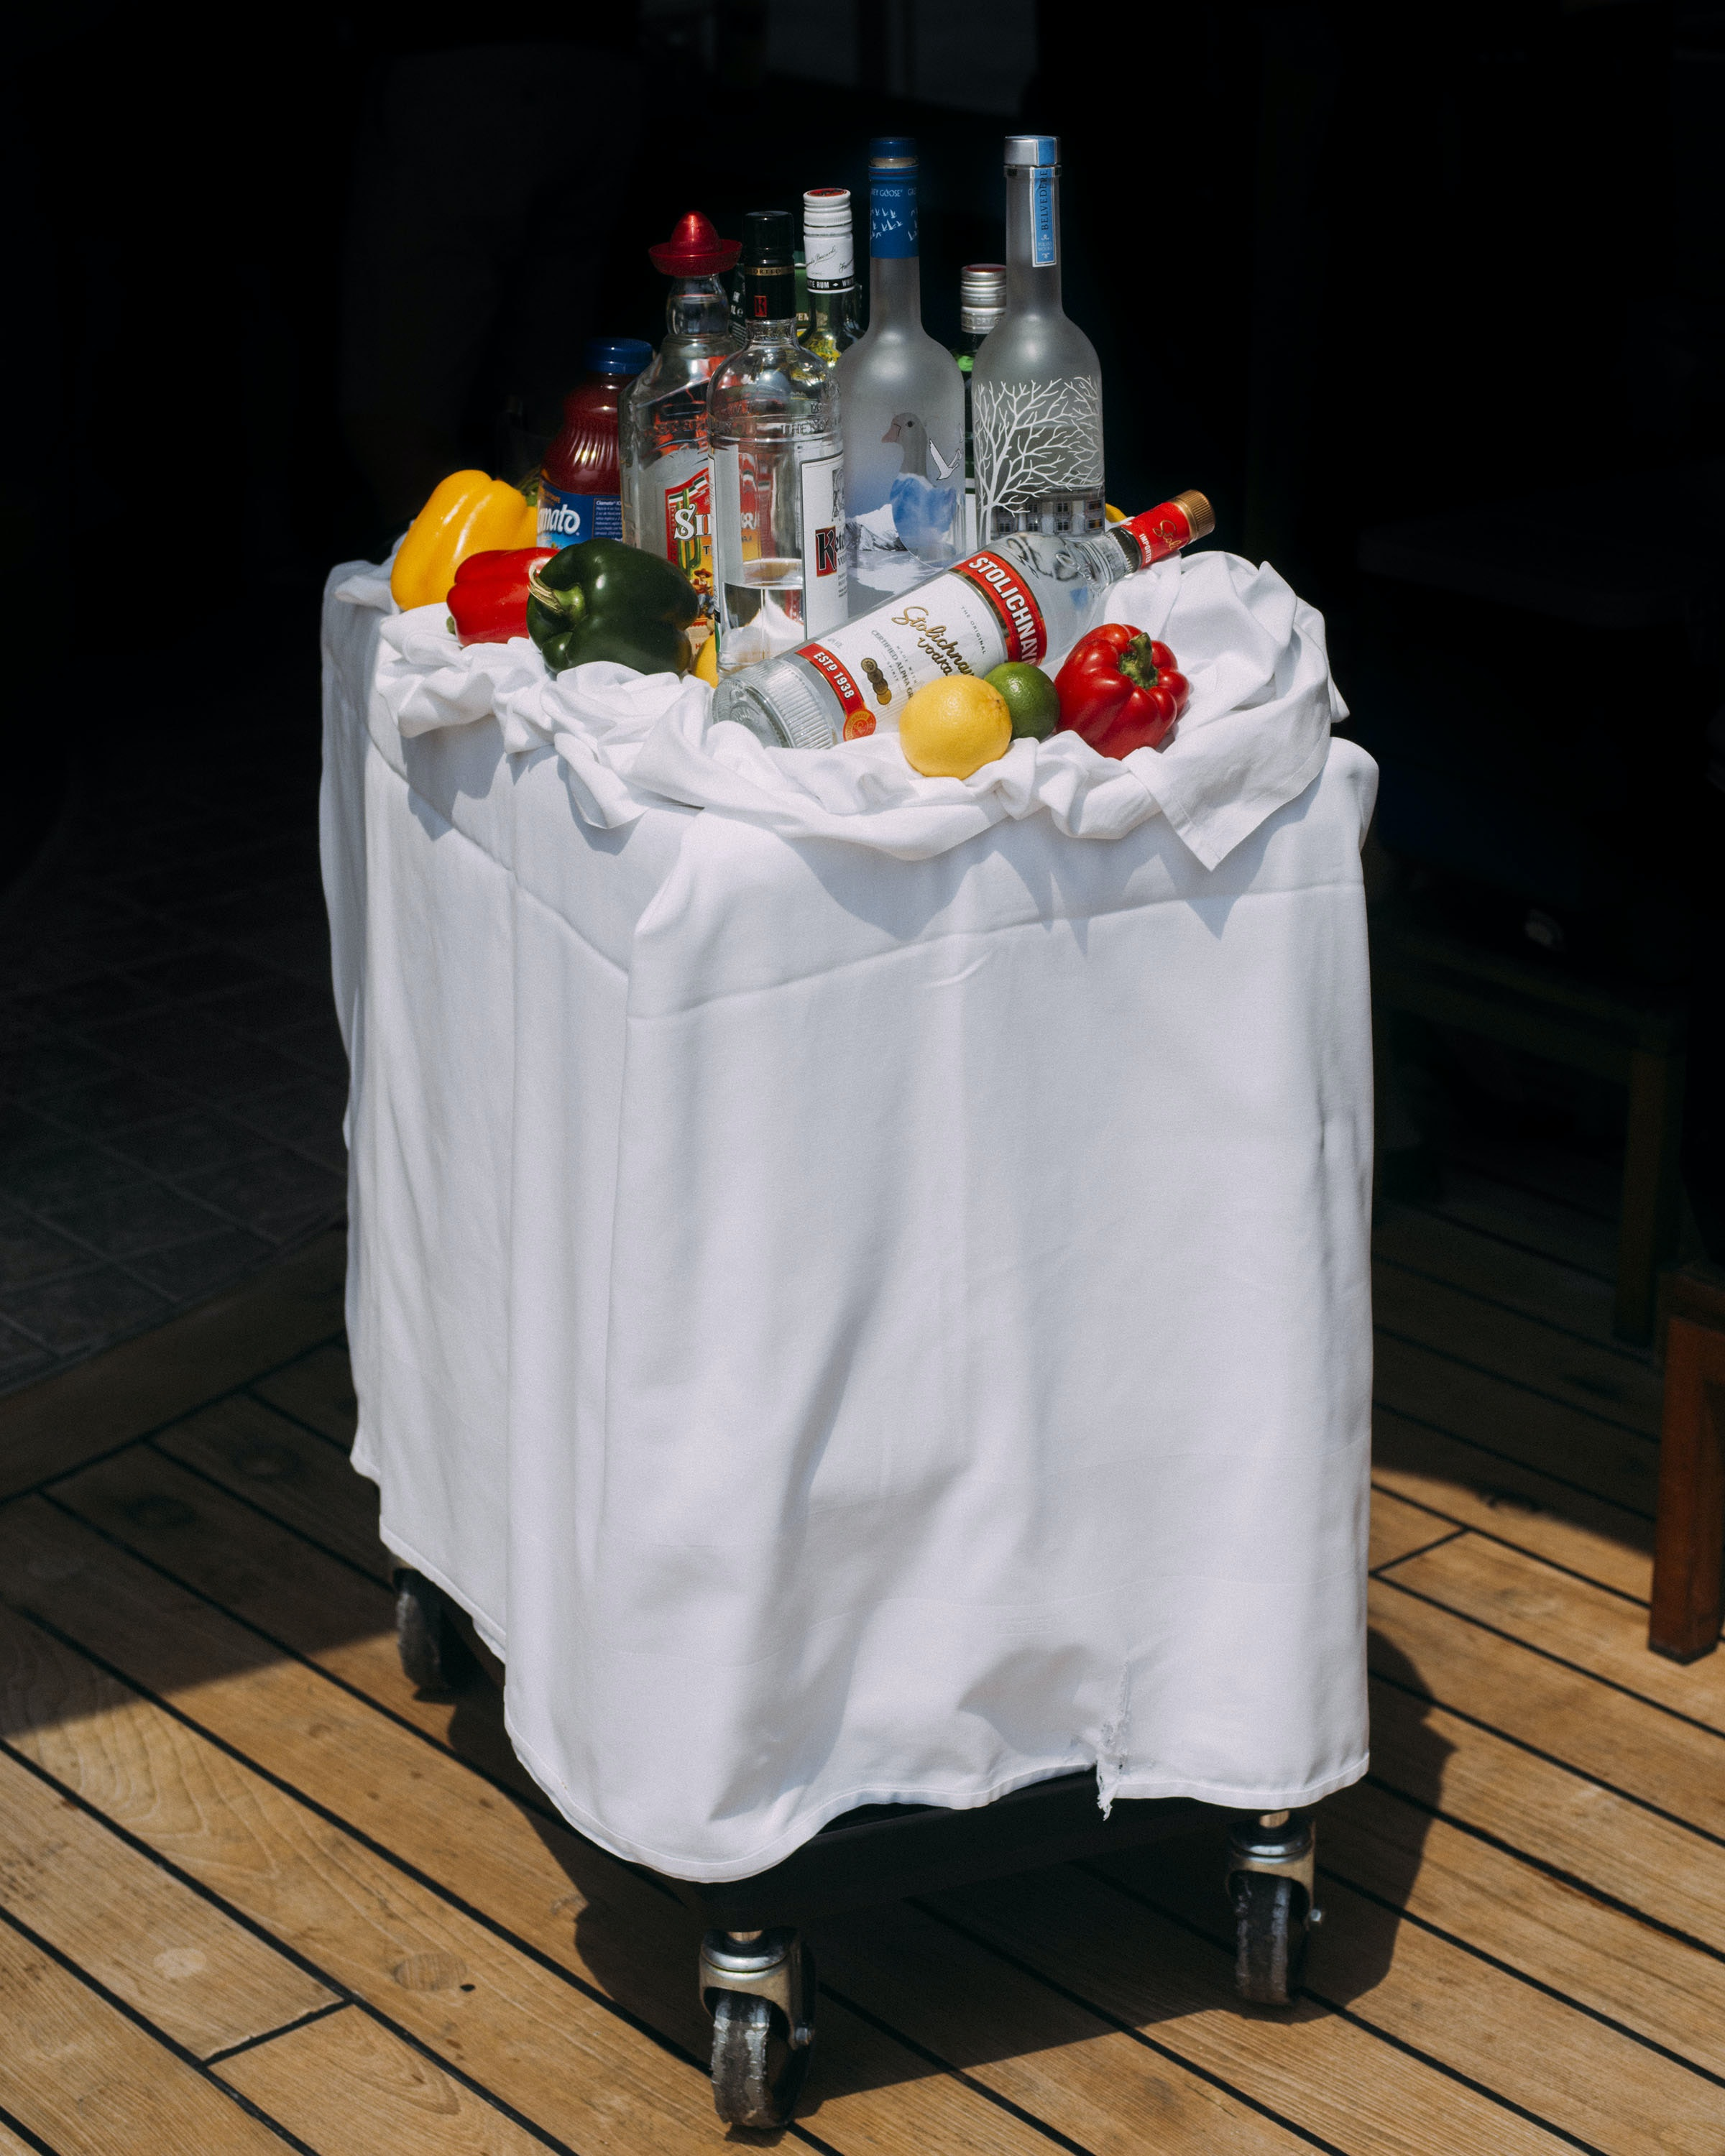 Every morning, the bar cart cruises the Silver Whisper pool area offering bloody marys to guests.